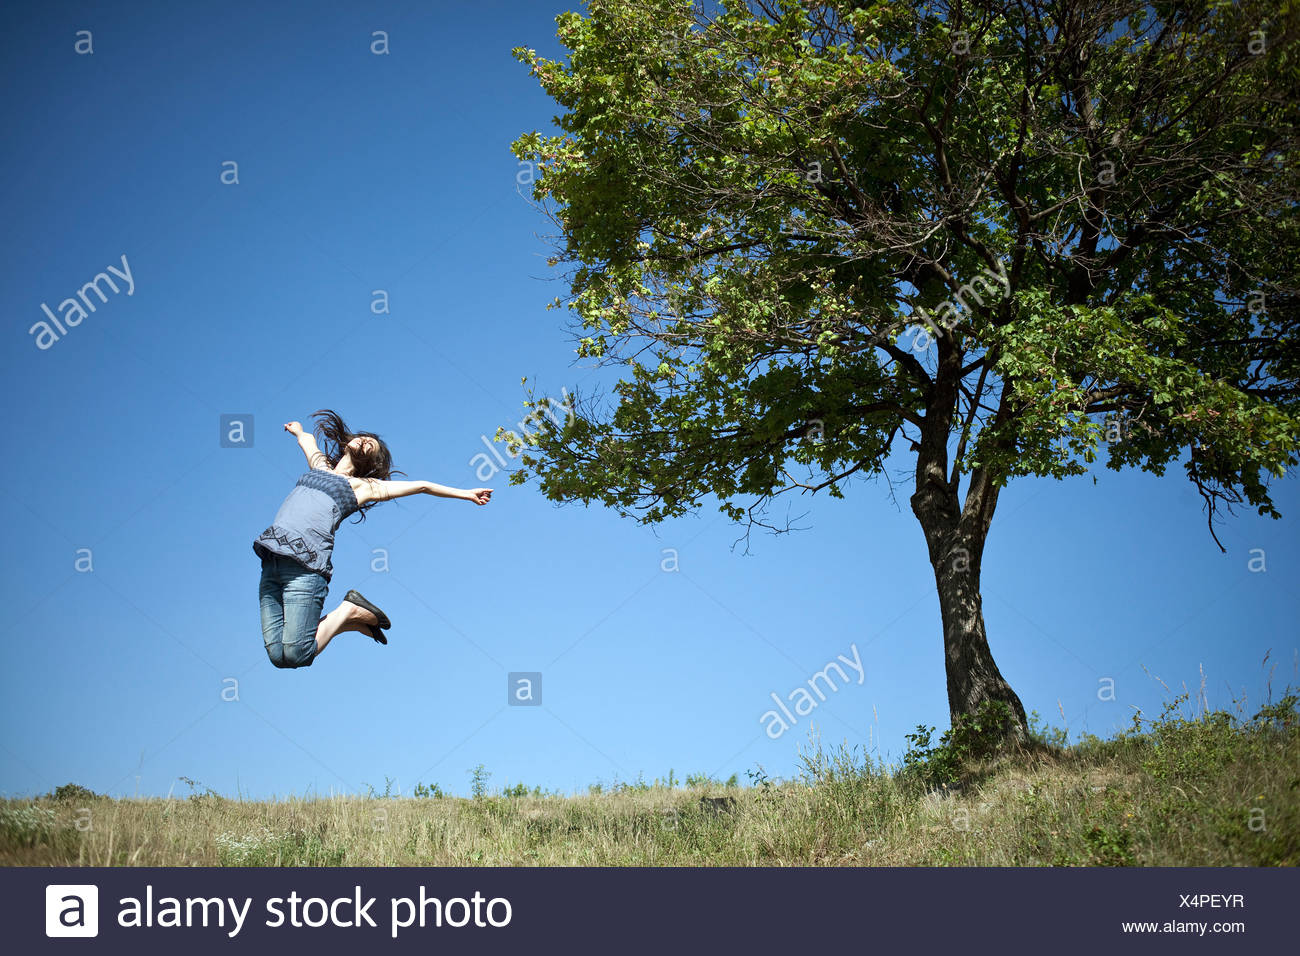 Woman jumping by tree - Stock Image